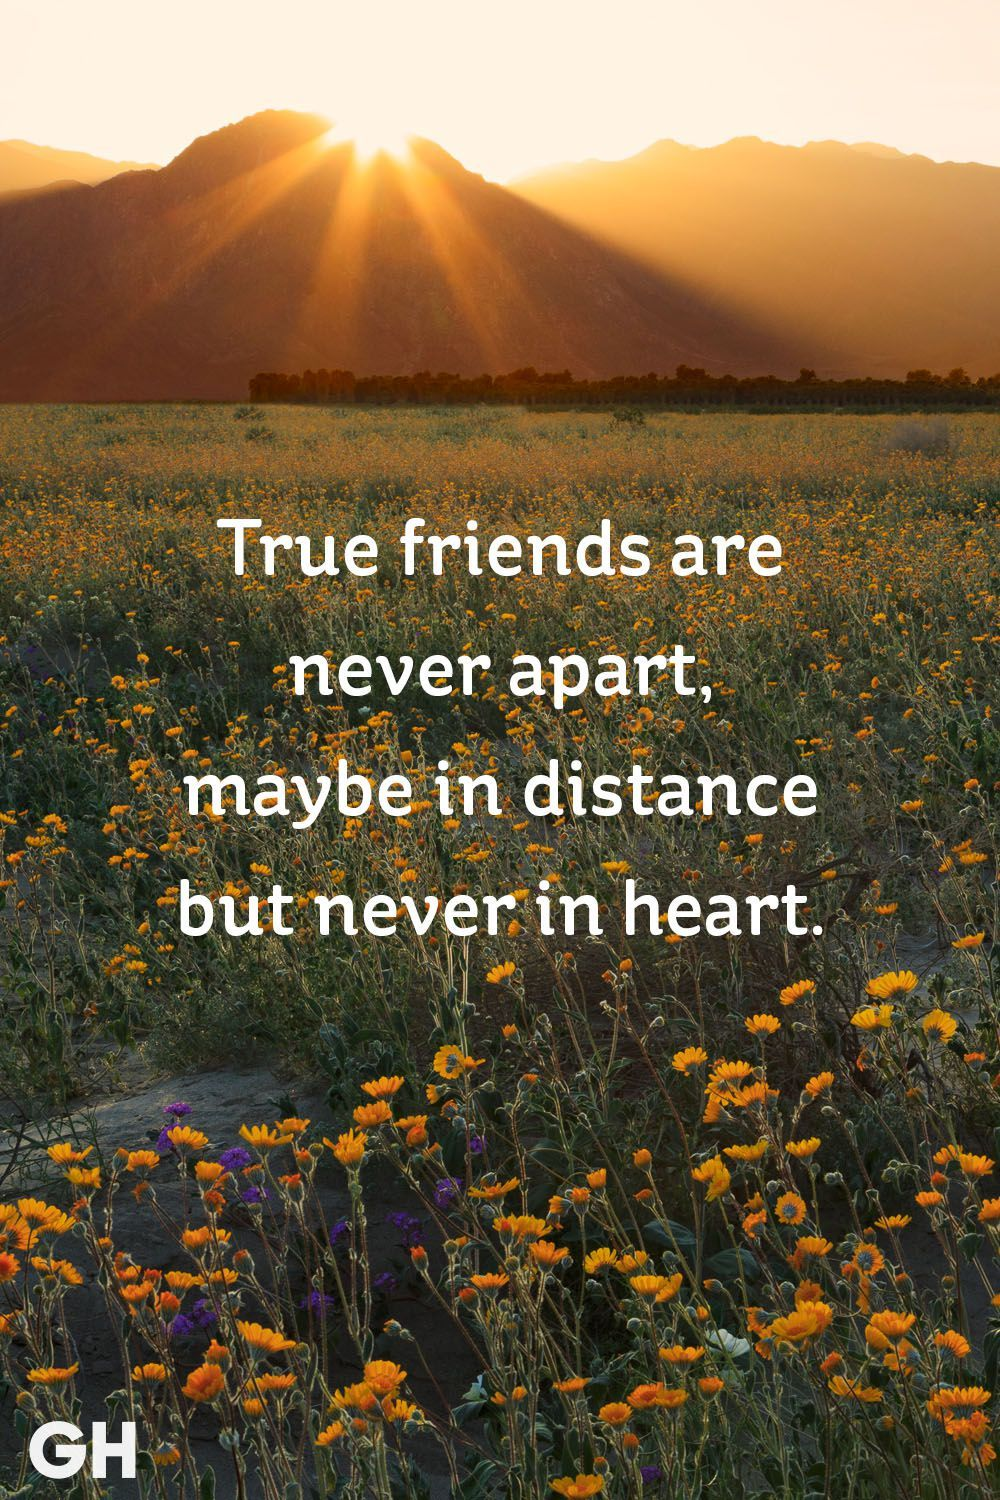 20 Short Friendship Quotes to Share With Your Best Friend - Cute ... | Friend  quotes distance, Long distance friendship quotes, Short friendship quotes